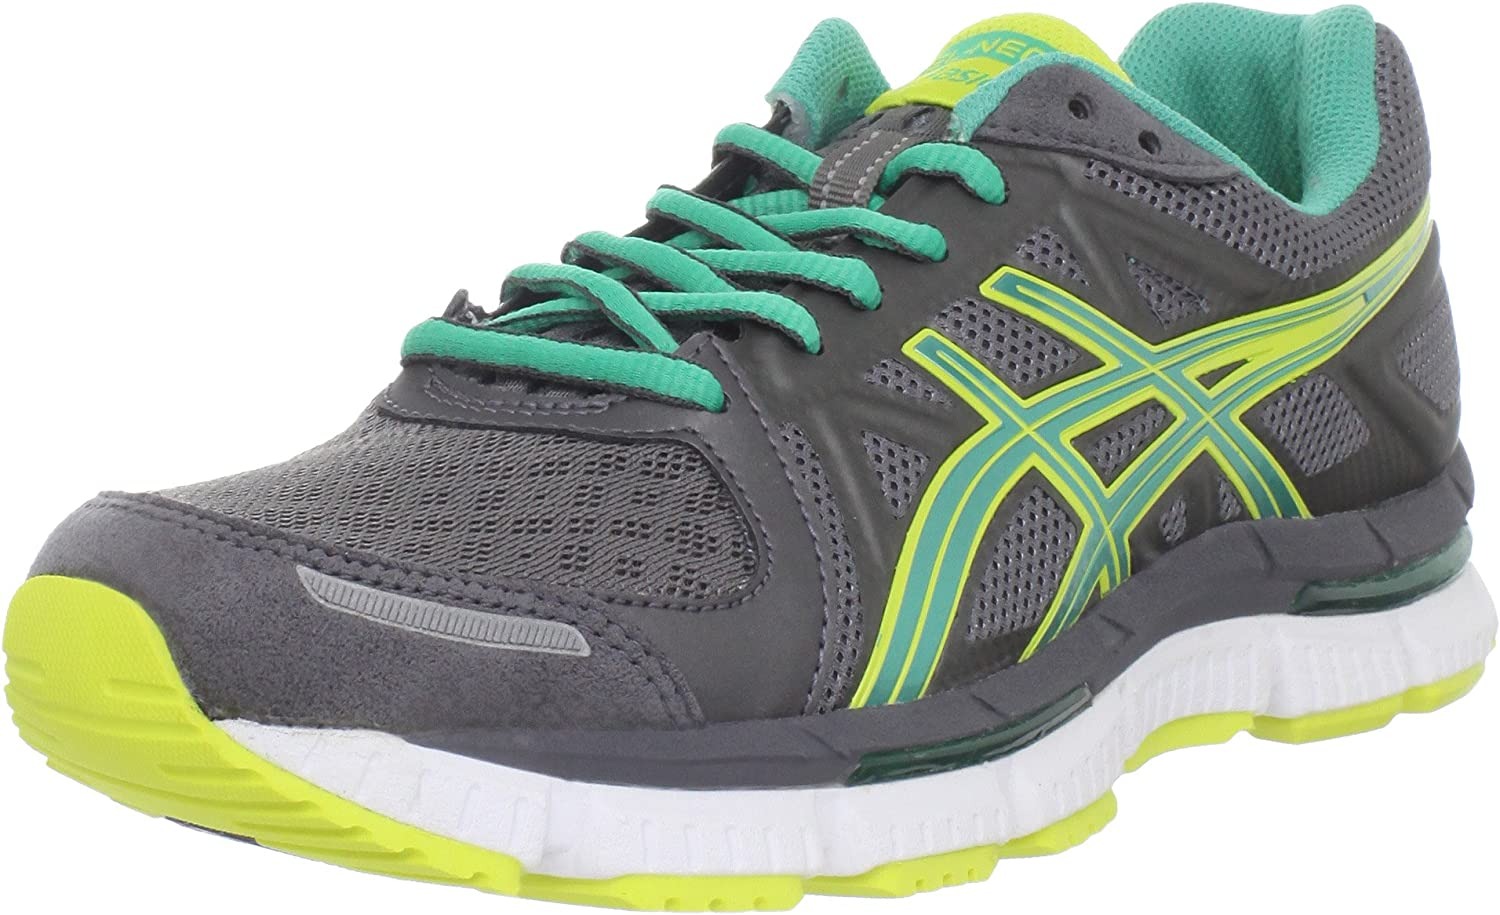 Asics - Zapatillas de Running para Mujer Gris Titanium/Emerald/Lemon Chrome: Amazon.es: Zapatos y complementos